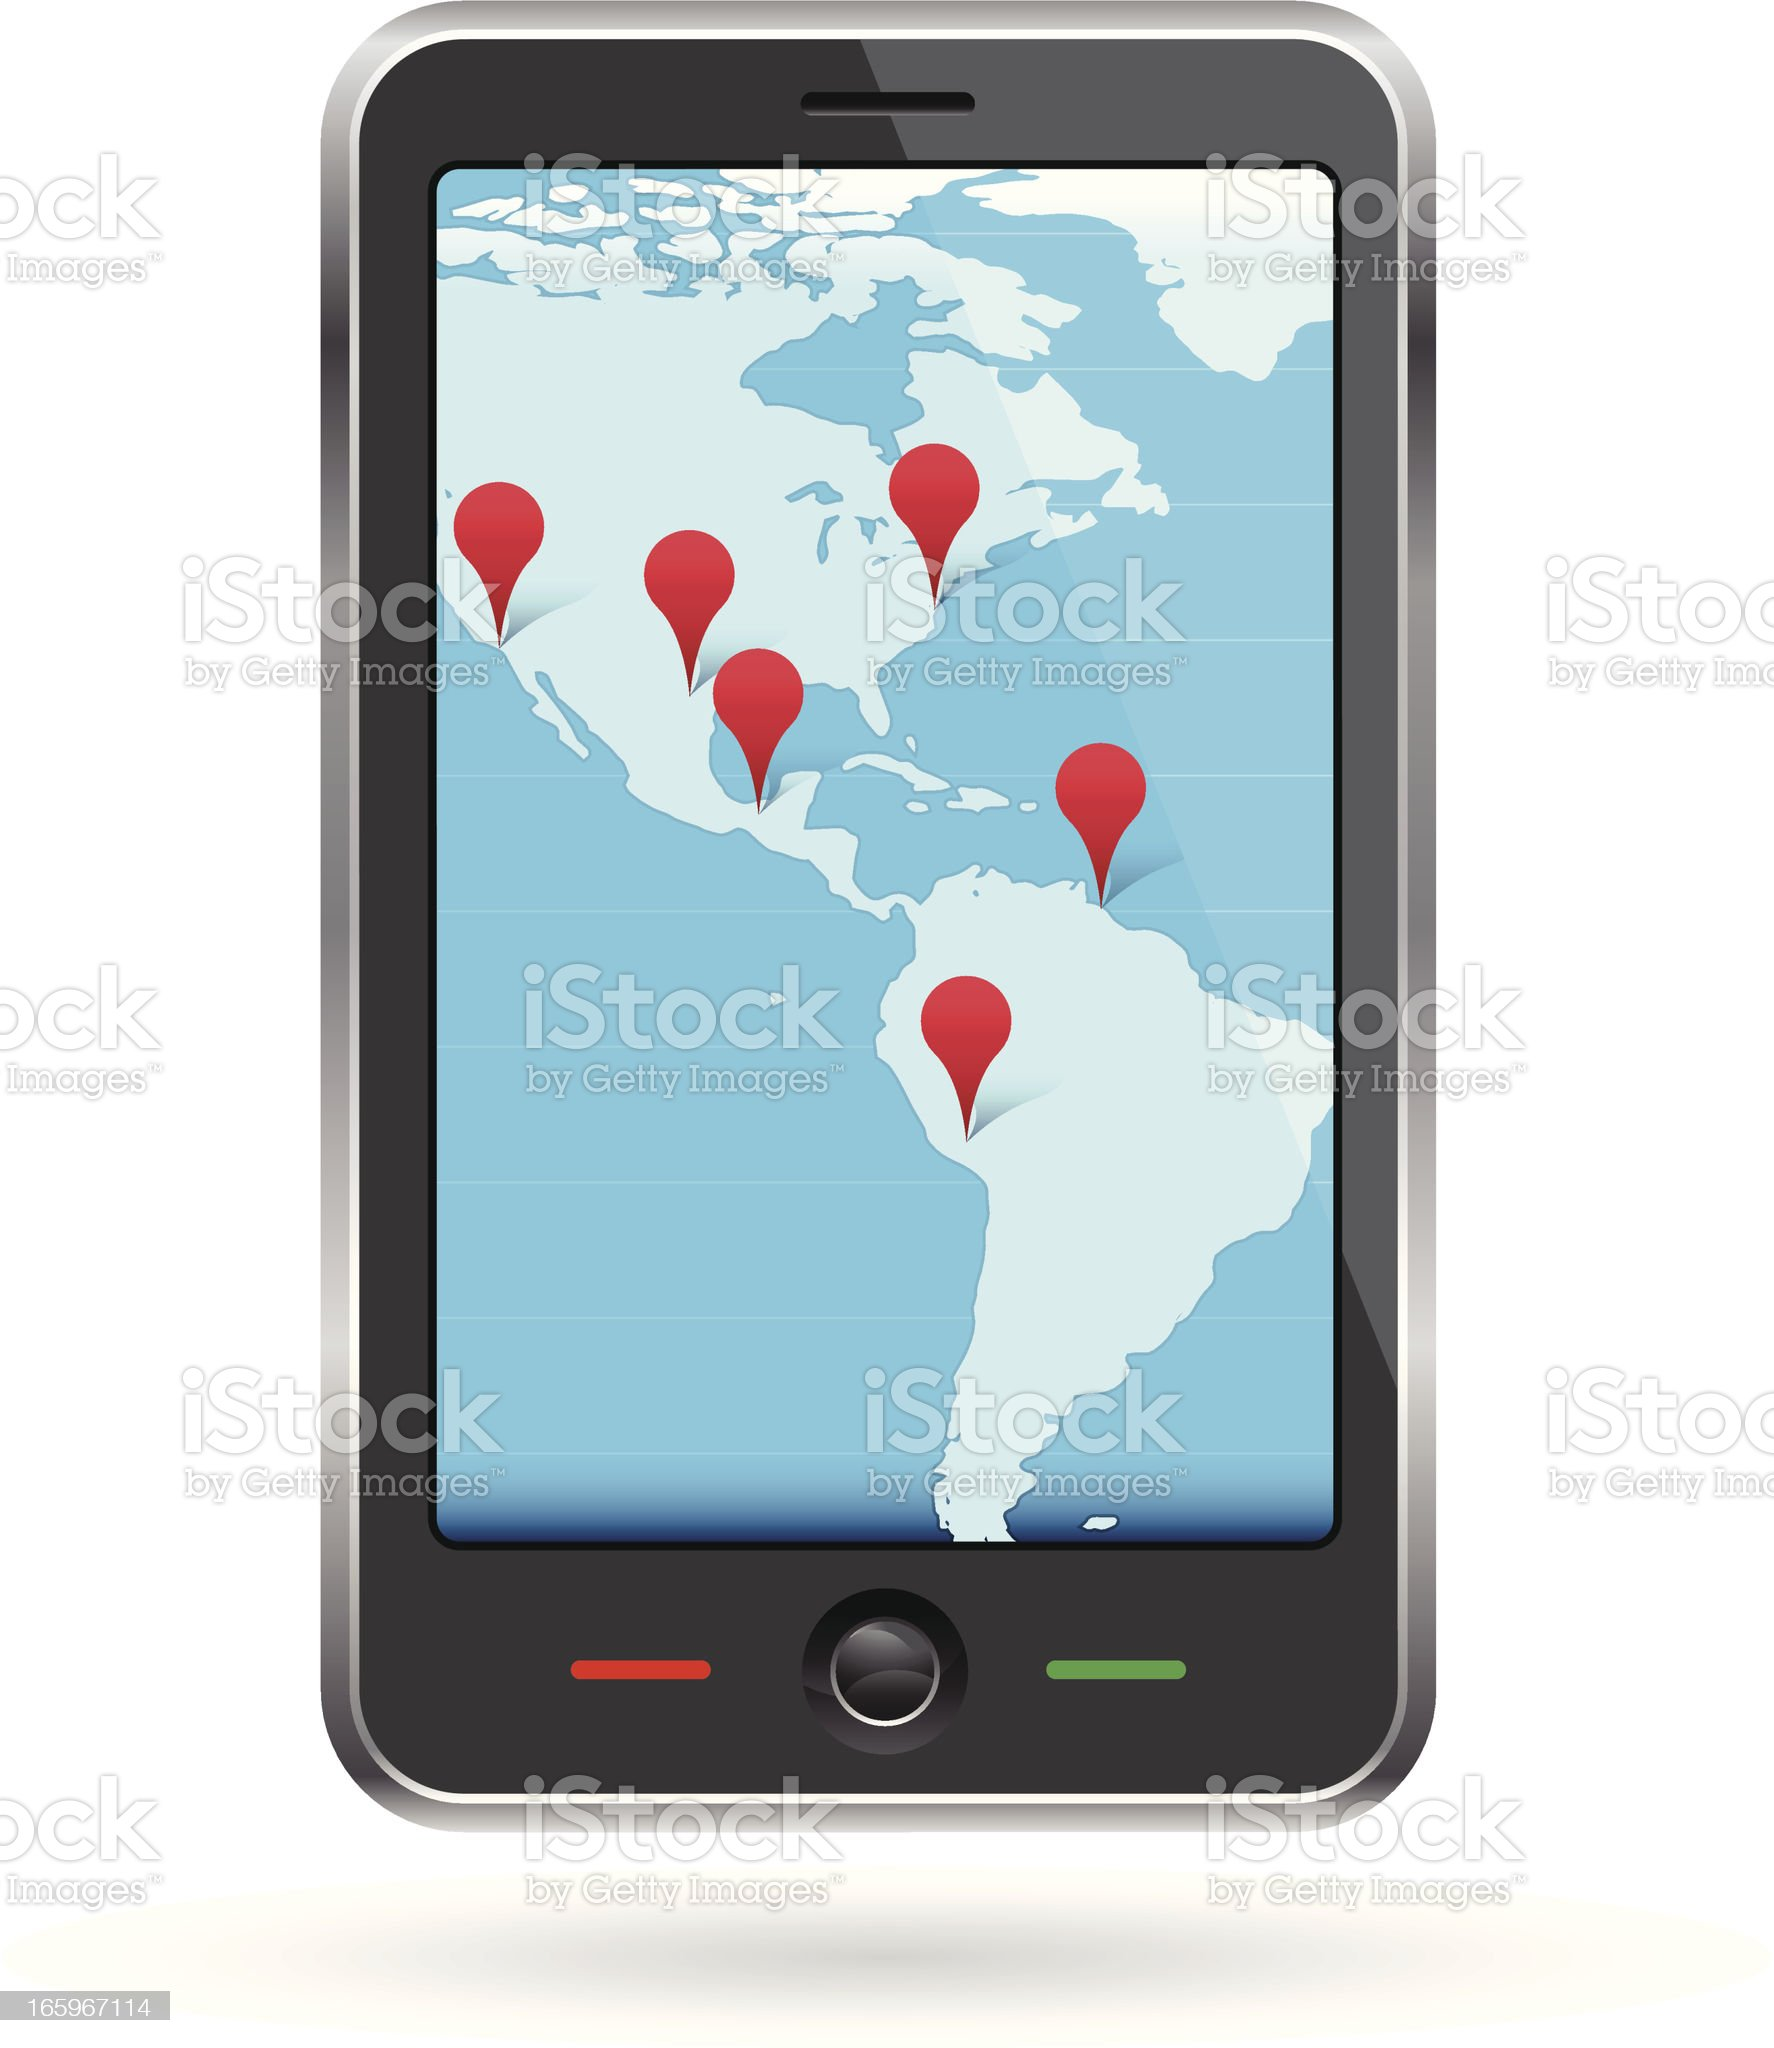 Mobile phone travel map with red pins royalty-free stock vector art